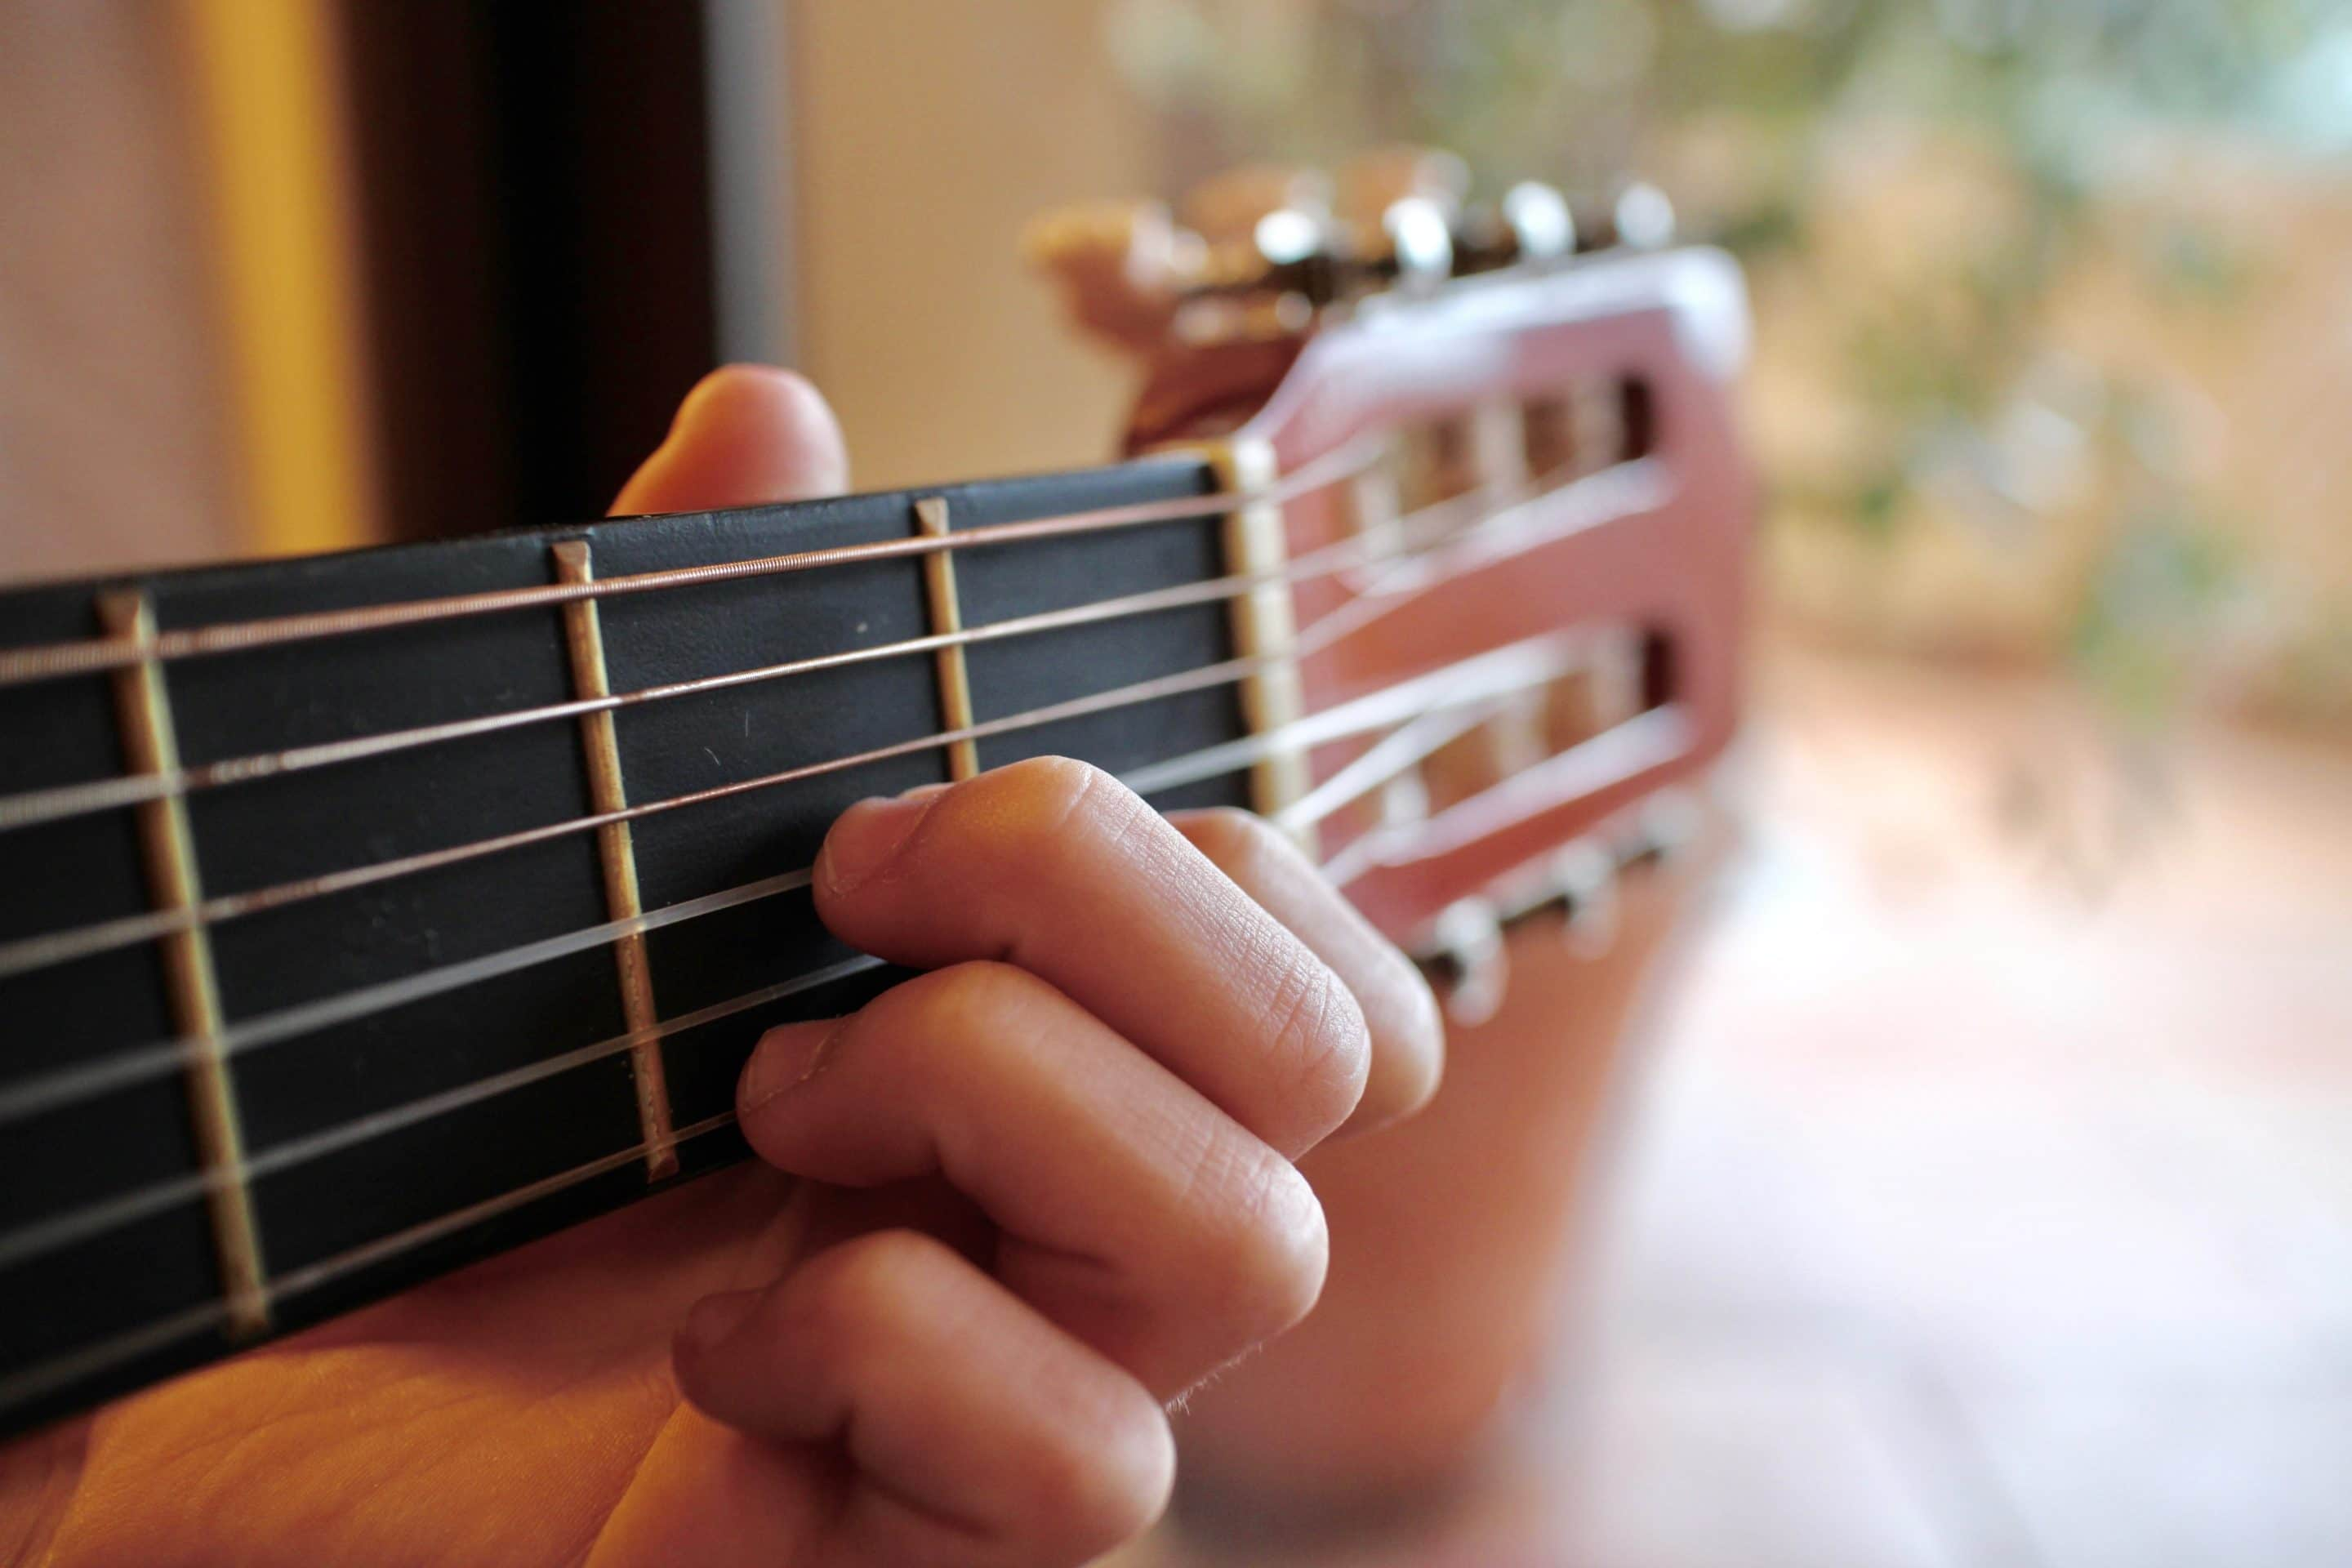 a smaller guitar perfect for kids who want to learn how to play guitar